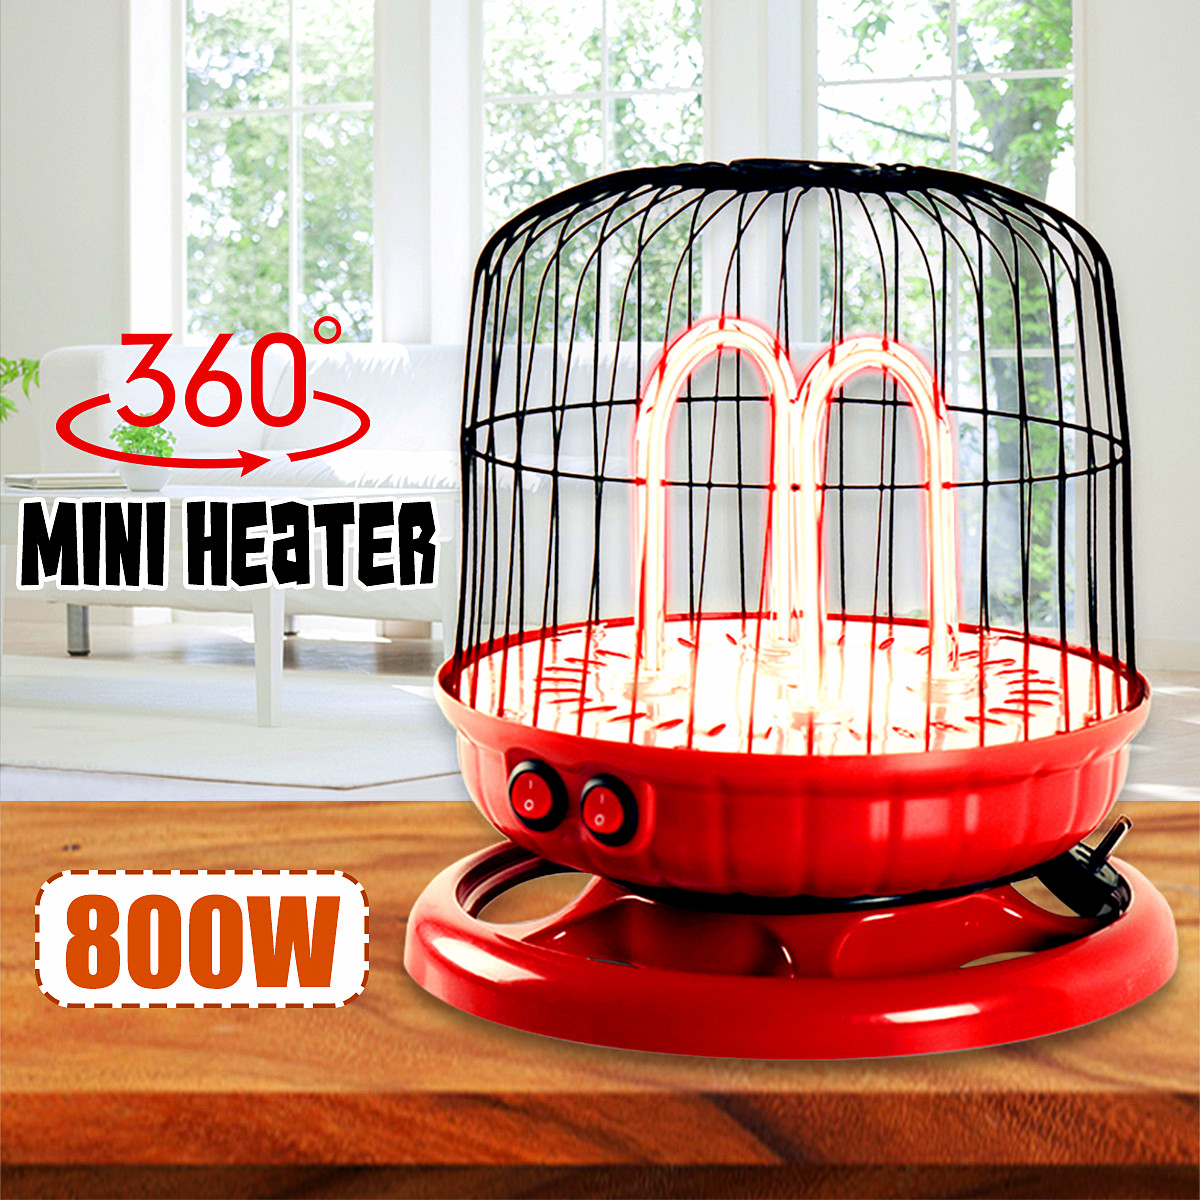 Desktop Electric Heater 800W 220V Home office Mini Table Heater Bird Cage Shape(Red) Warm LOVE Valentine Gift